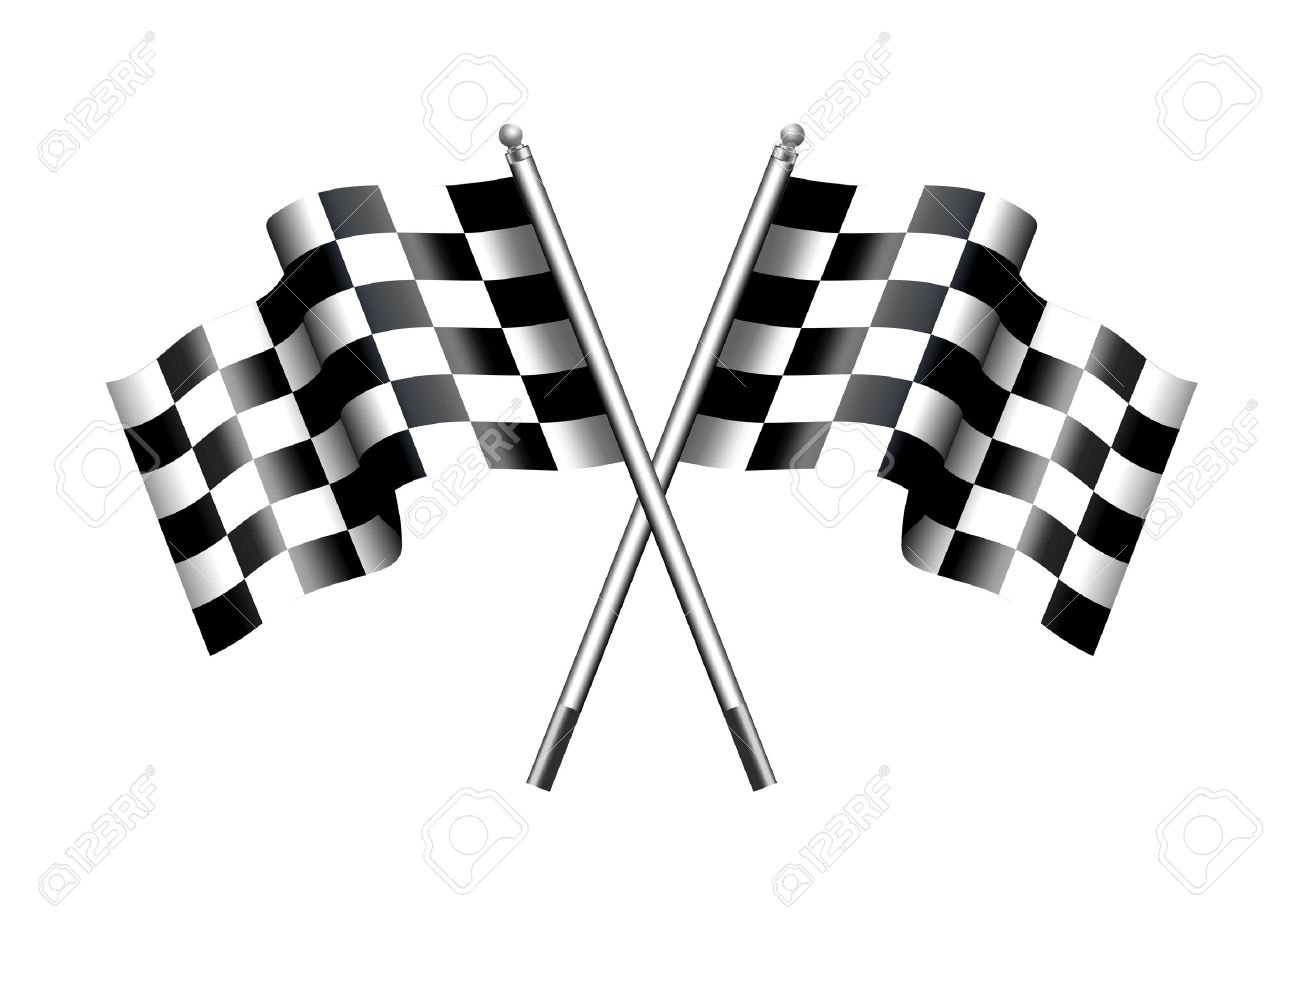 Chequered Checkered Flags Motor Racing - 35177111